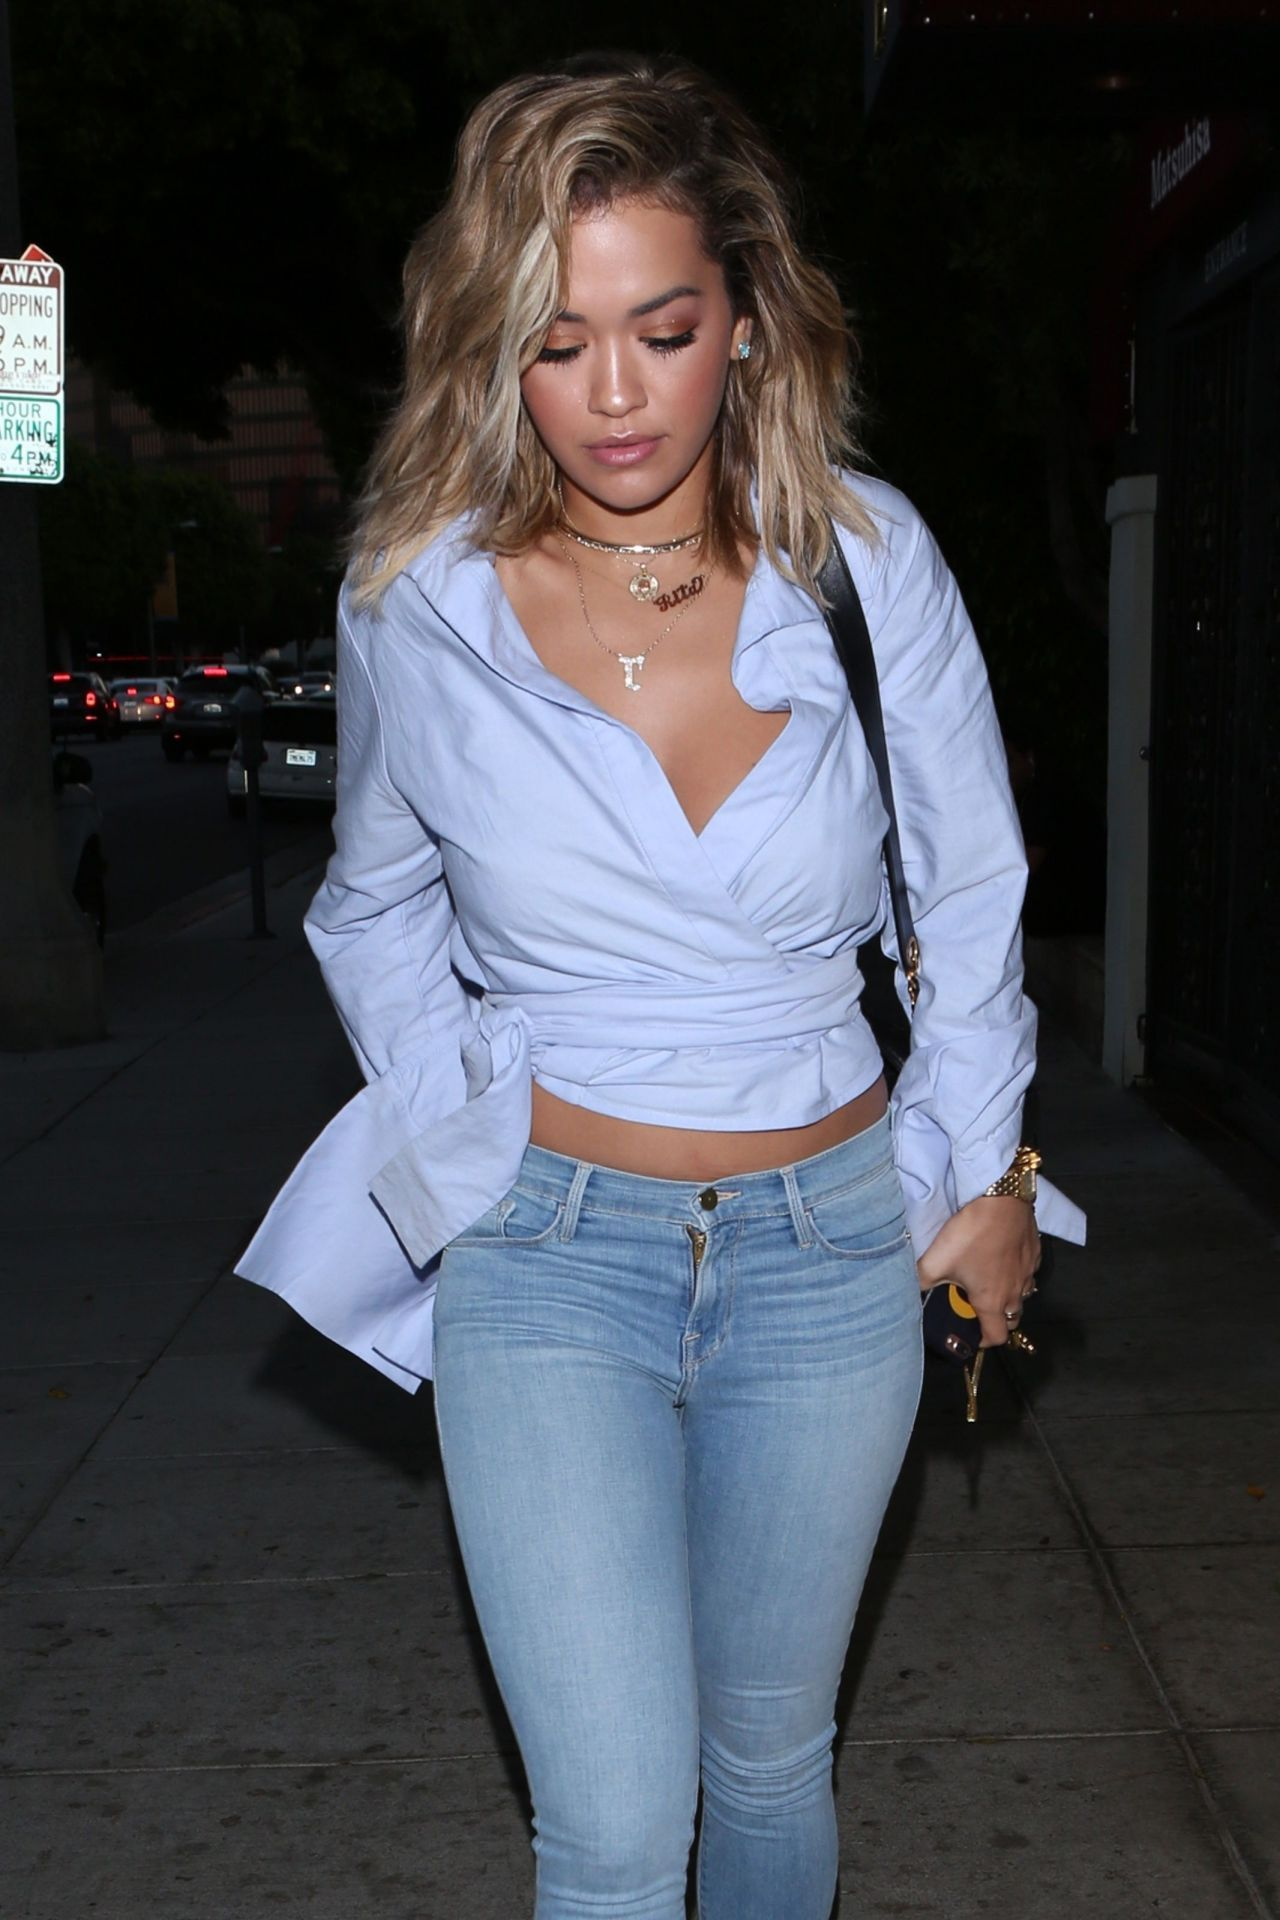 #BeverlyHills, #RitaOra Rita Ora at Matsuhisa Restaurant in Beverly Hills 07/27/2017 | Celebrity Uncensored! Read more: http://celxxx.com/2017/07/rita-ora-at-matsuhisa-restaurant-in-beverly-hills-07272017/